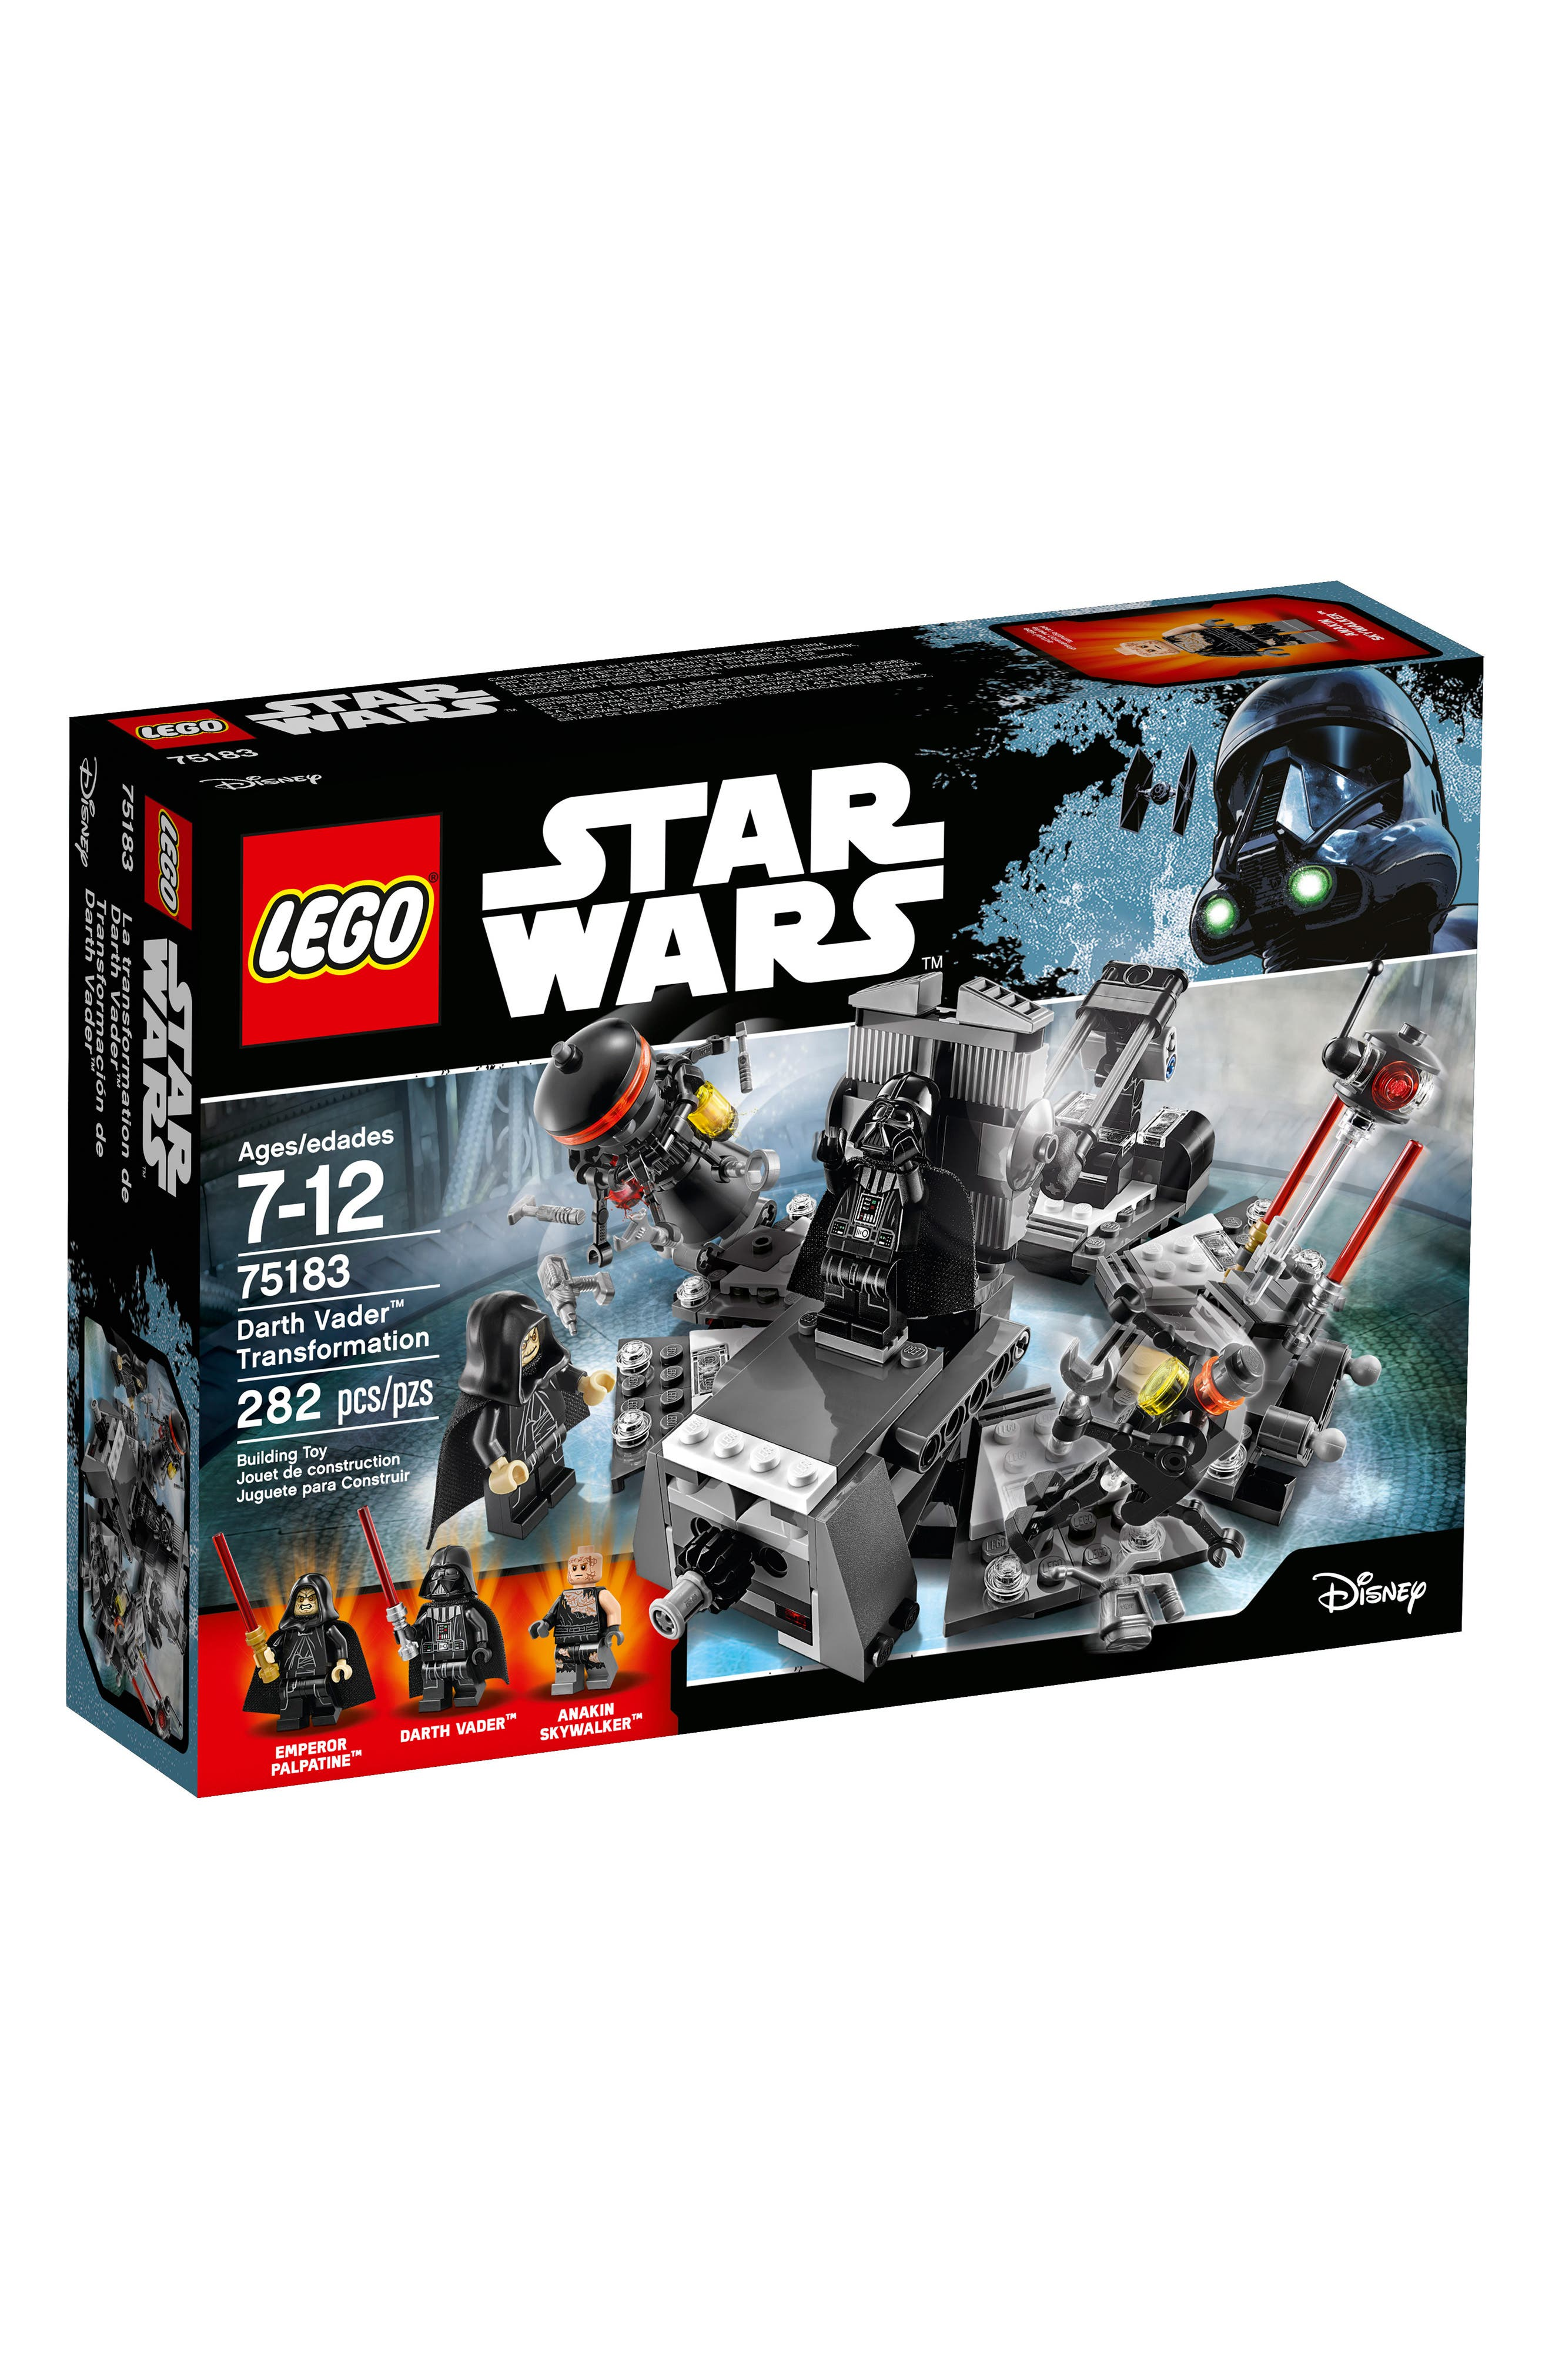 Star Wars<sup>™</sup> Revenge of the Sith Darth Vader Transformation - 75183,                         Main,                         color, Multi